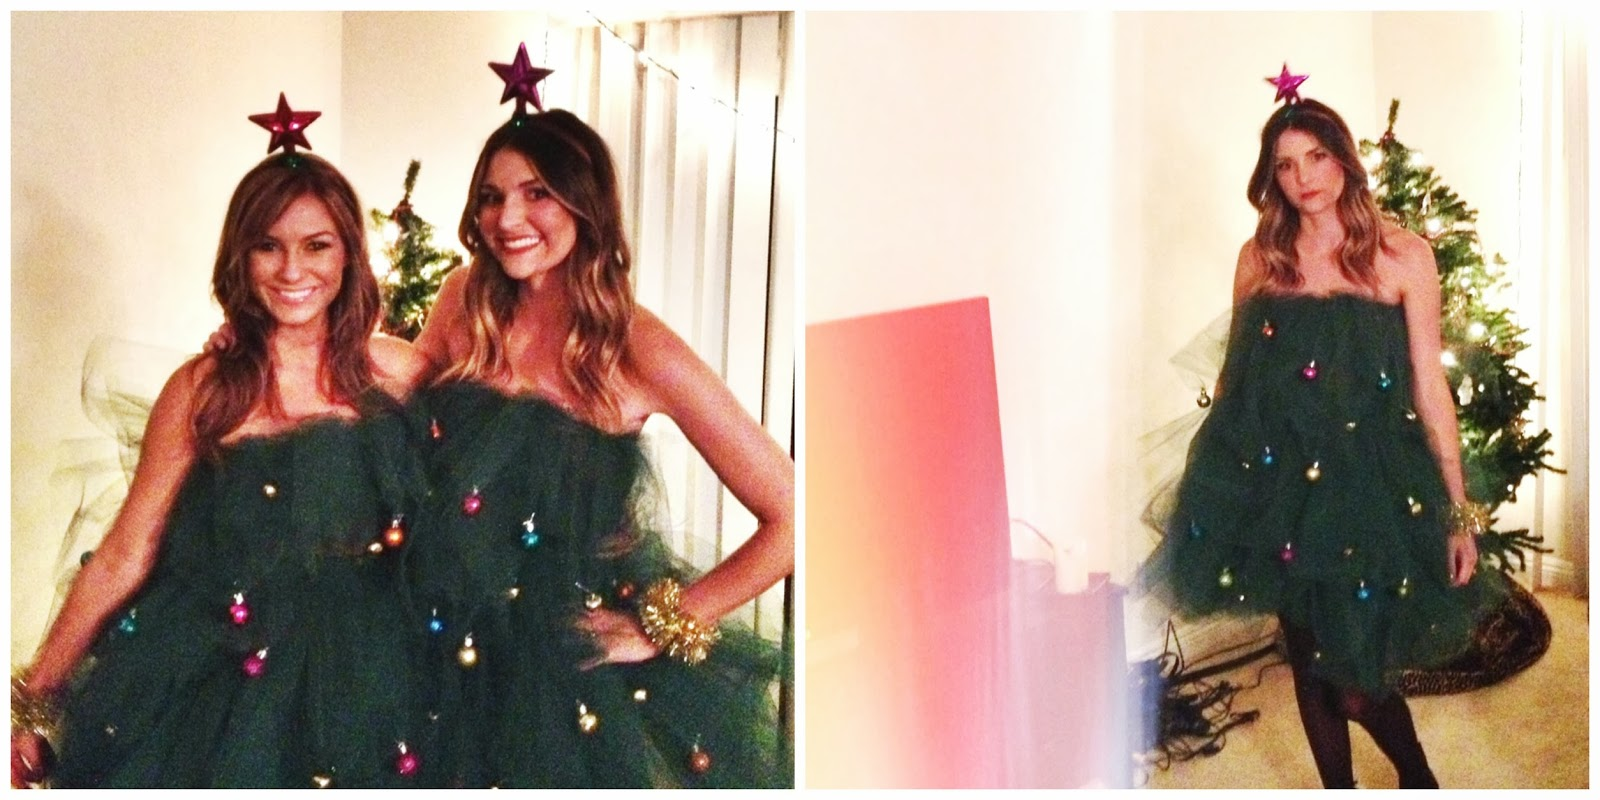 DIY Christmas Tree Costume - Sloppy Elegance